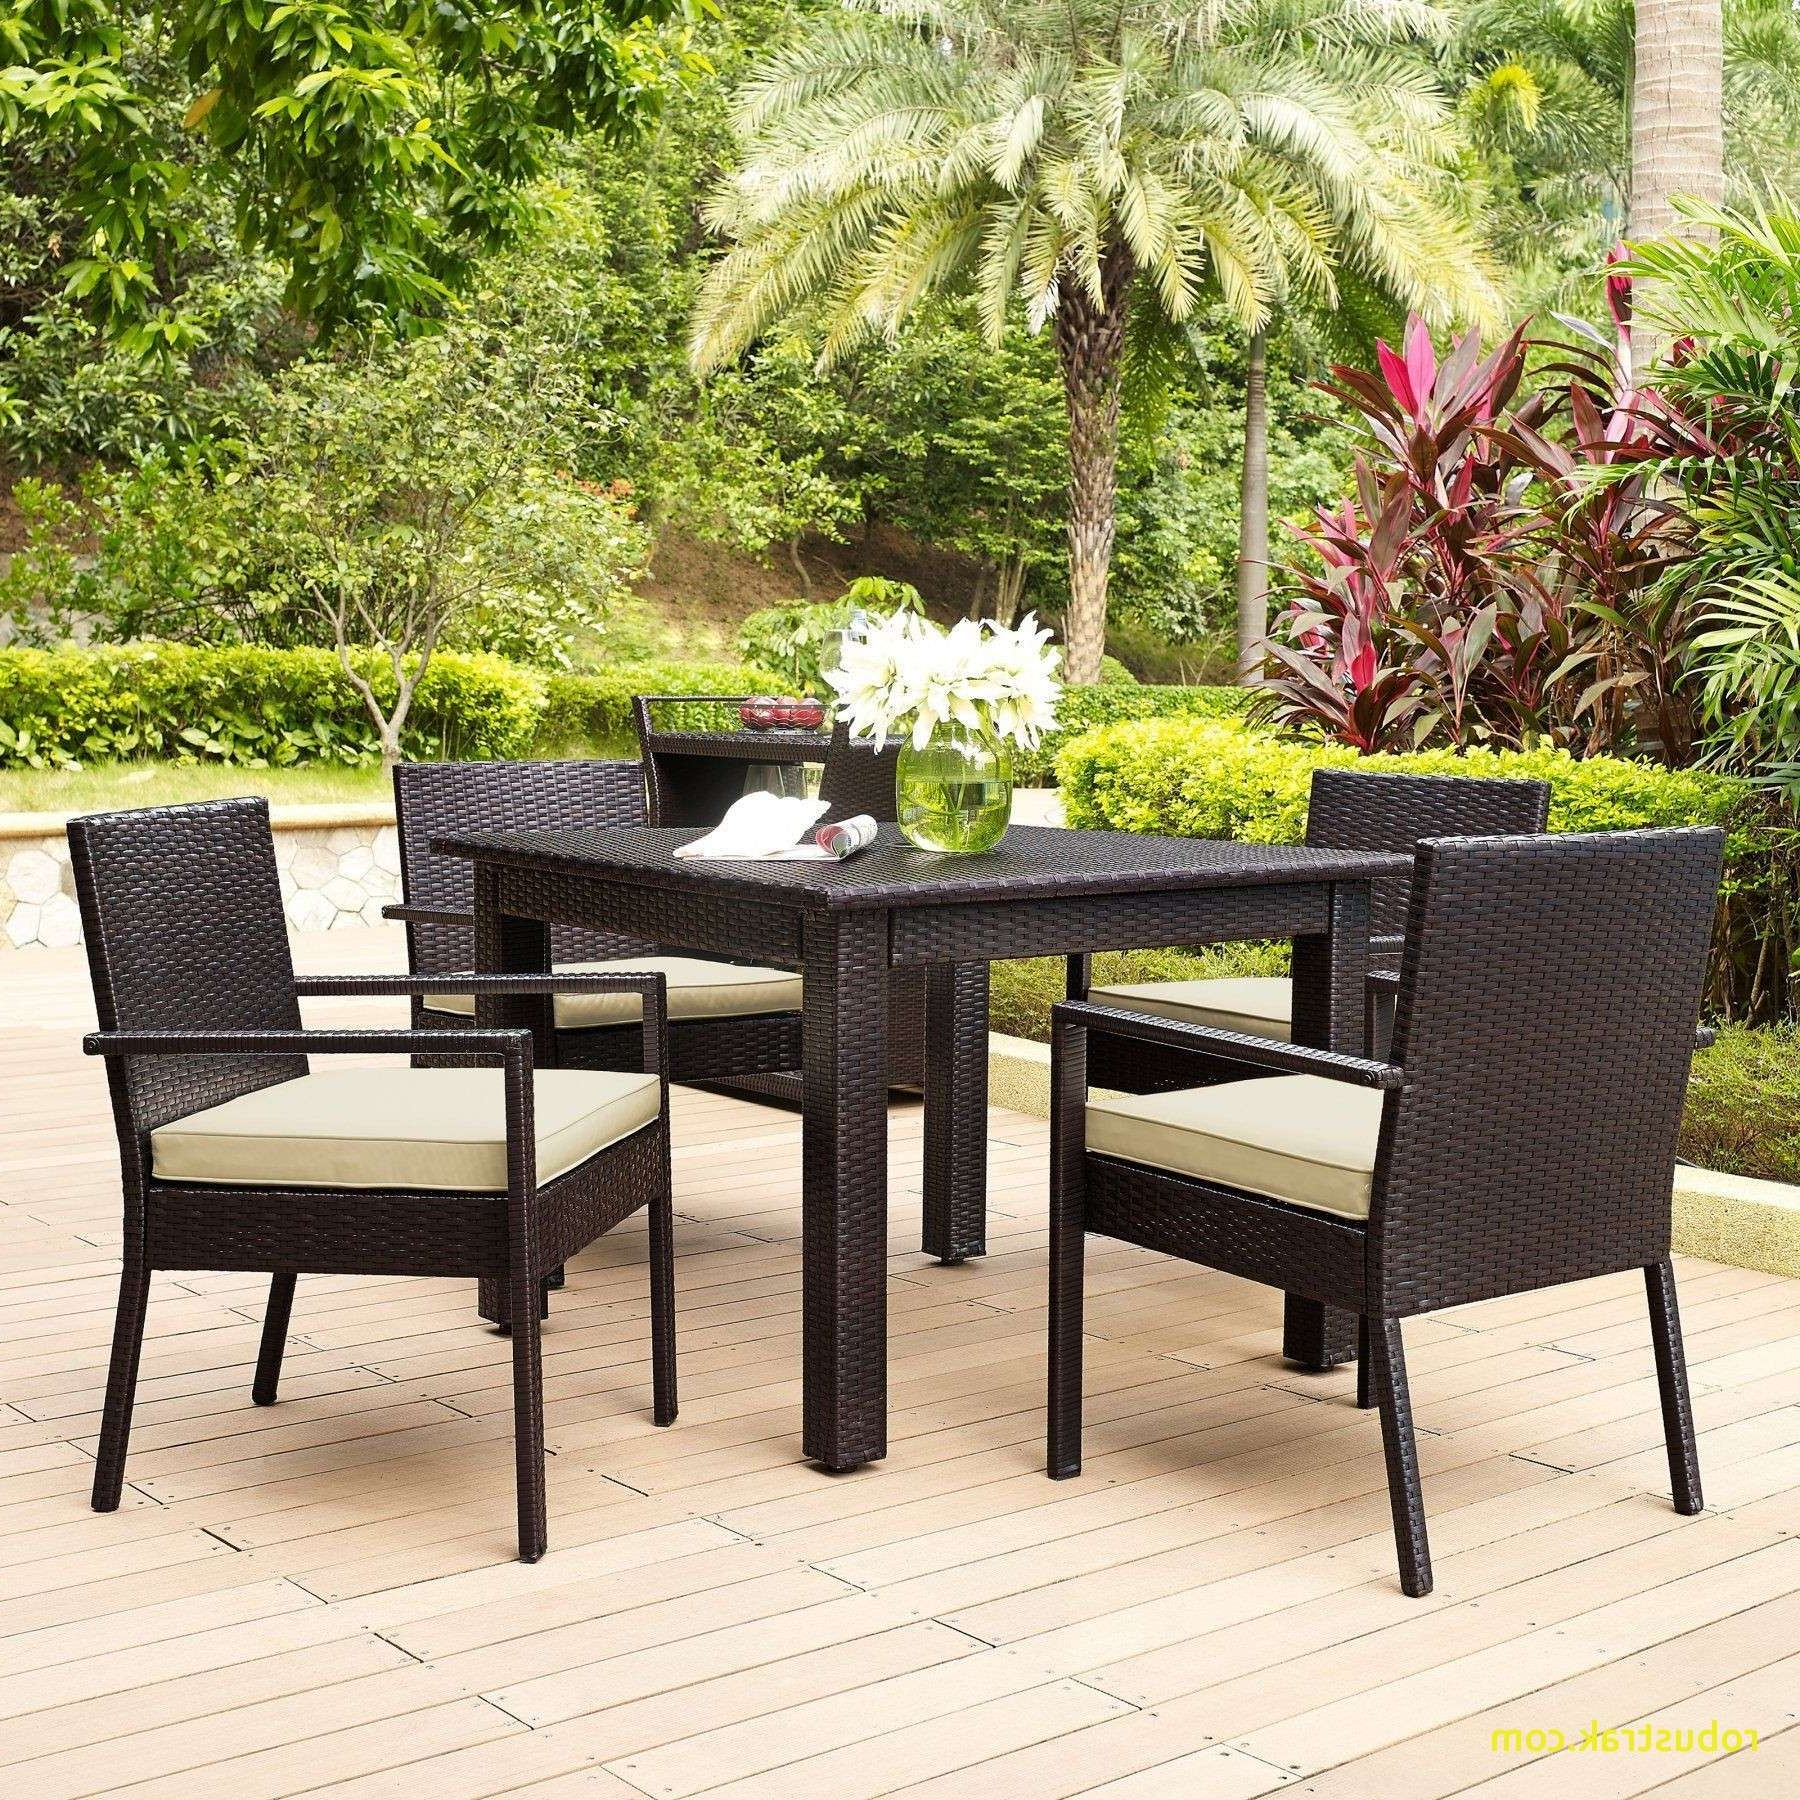 Chair : Used Patio Furniture Plastic Dining Sets Wicker Rocking In Trendy Used Patio Rocking Chairs (View 18 of 20)